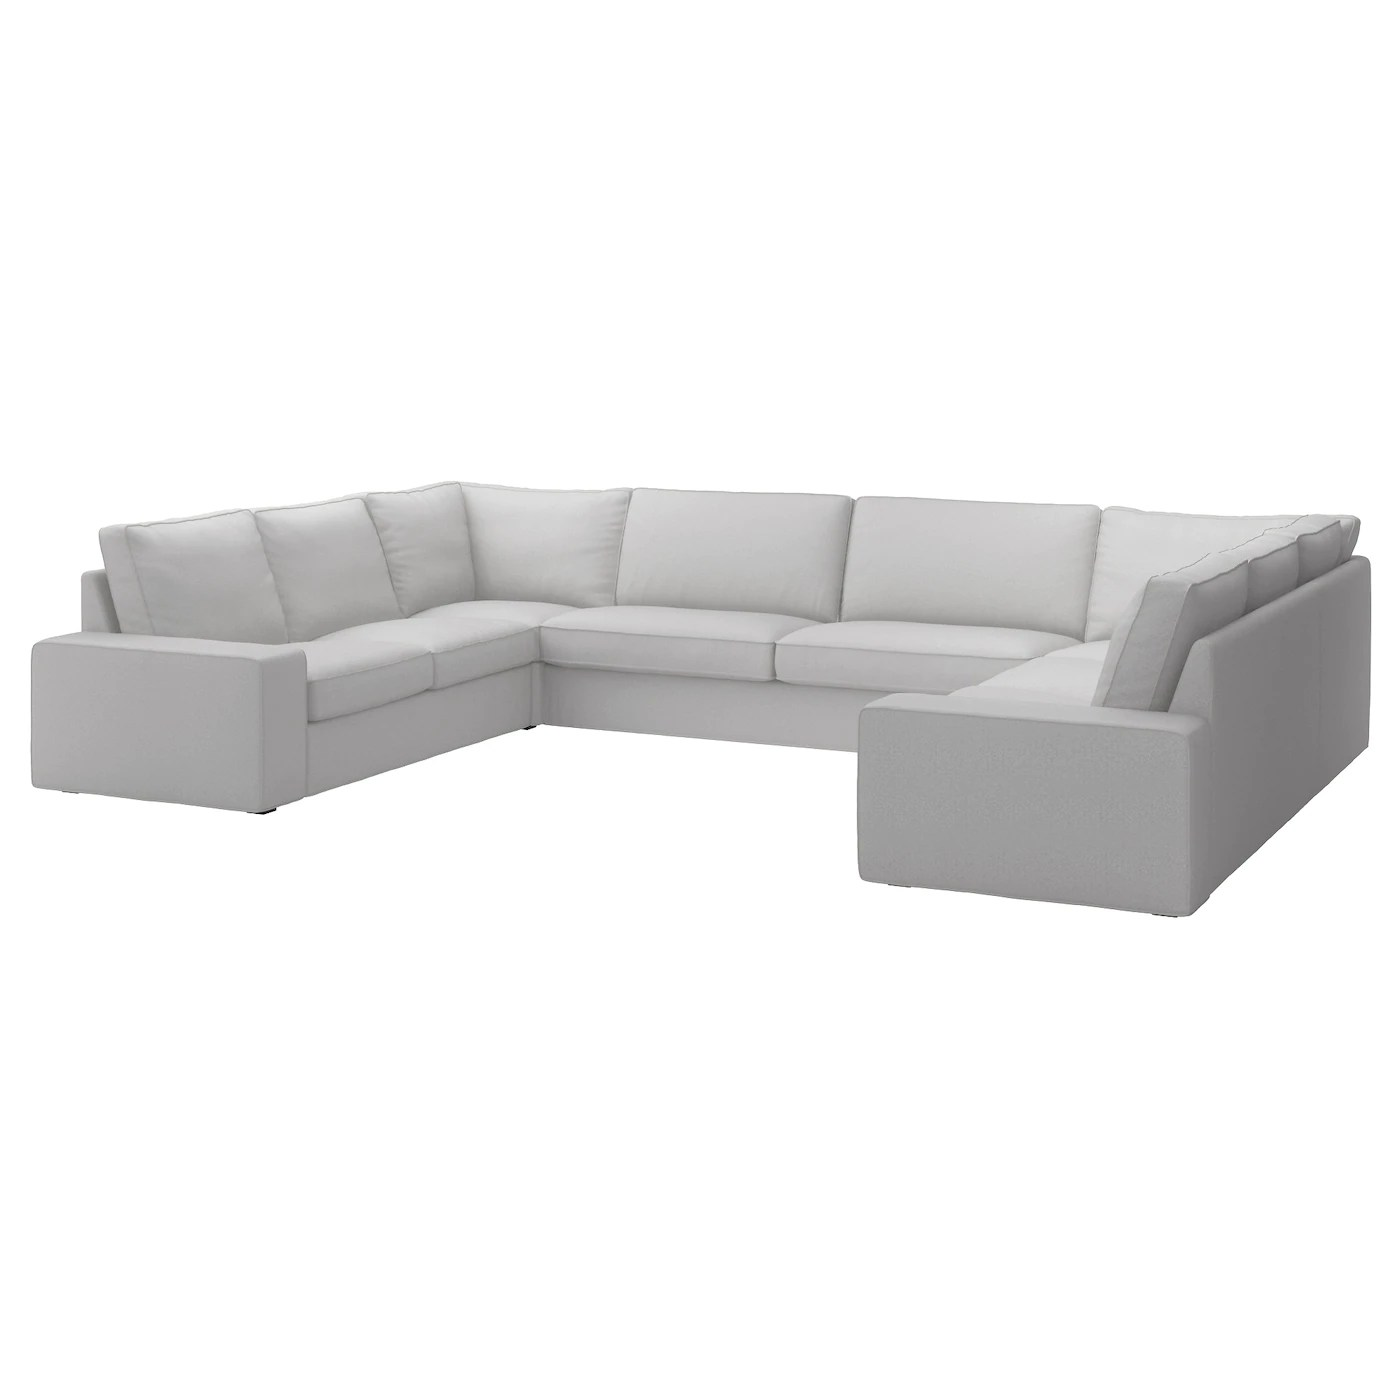 U Form Sofa Ikea Kivik U Shaped Sofa 7 Seat Ramna Light Grey Ikea